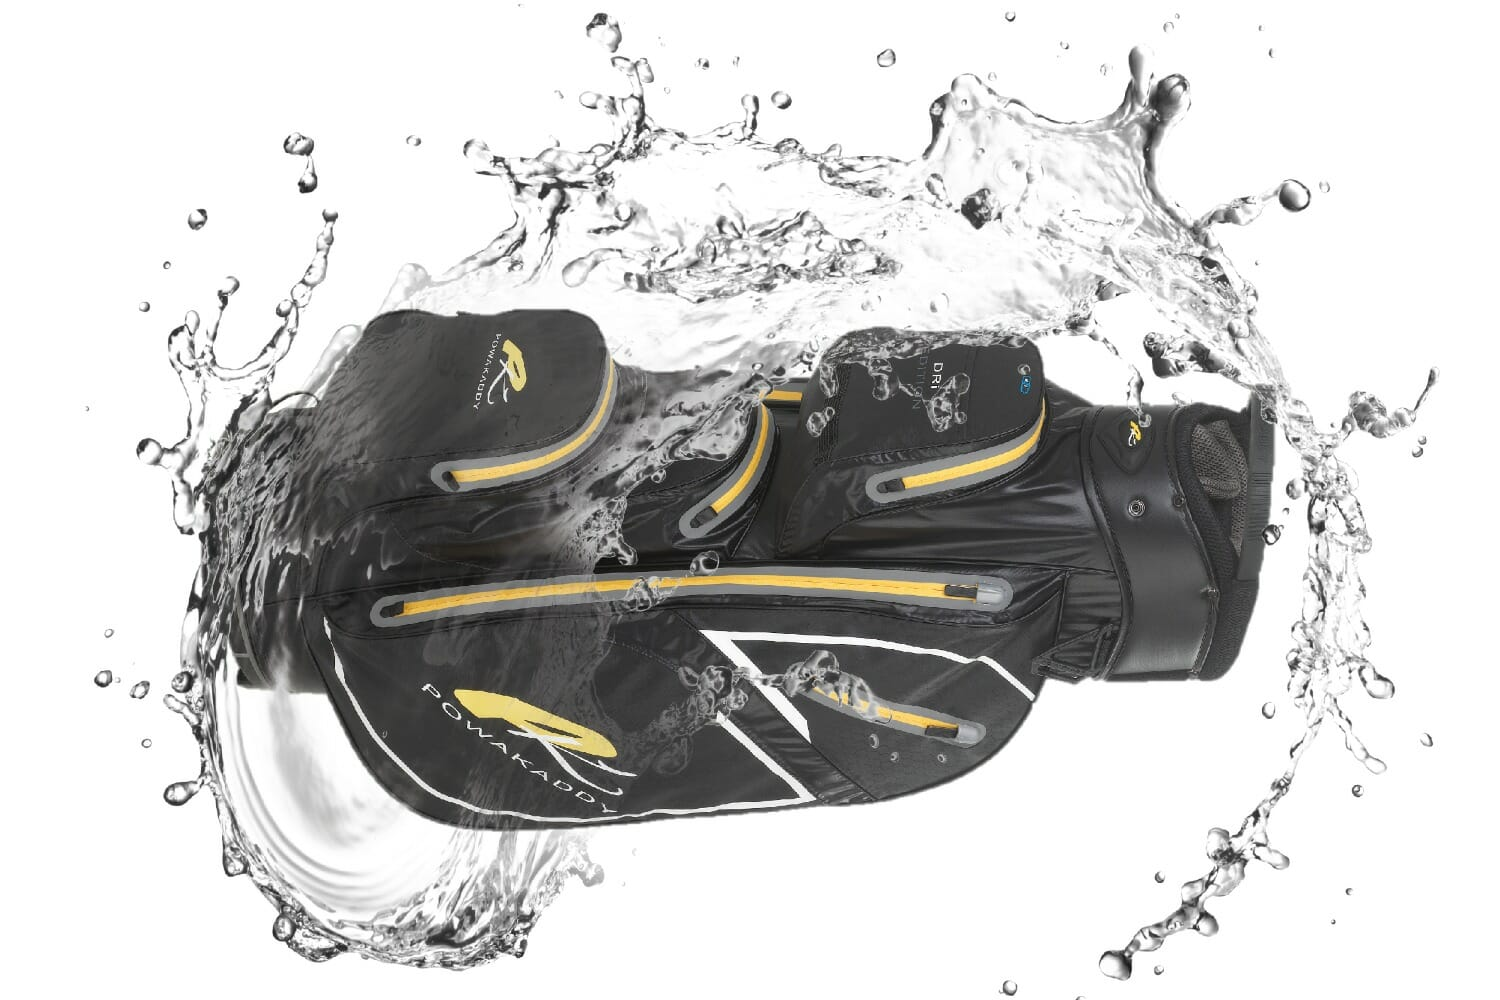 Waterproof your game with the PowaKaddy Dri-Edition bag